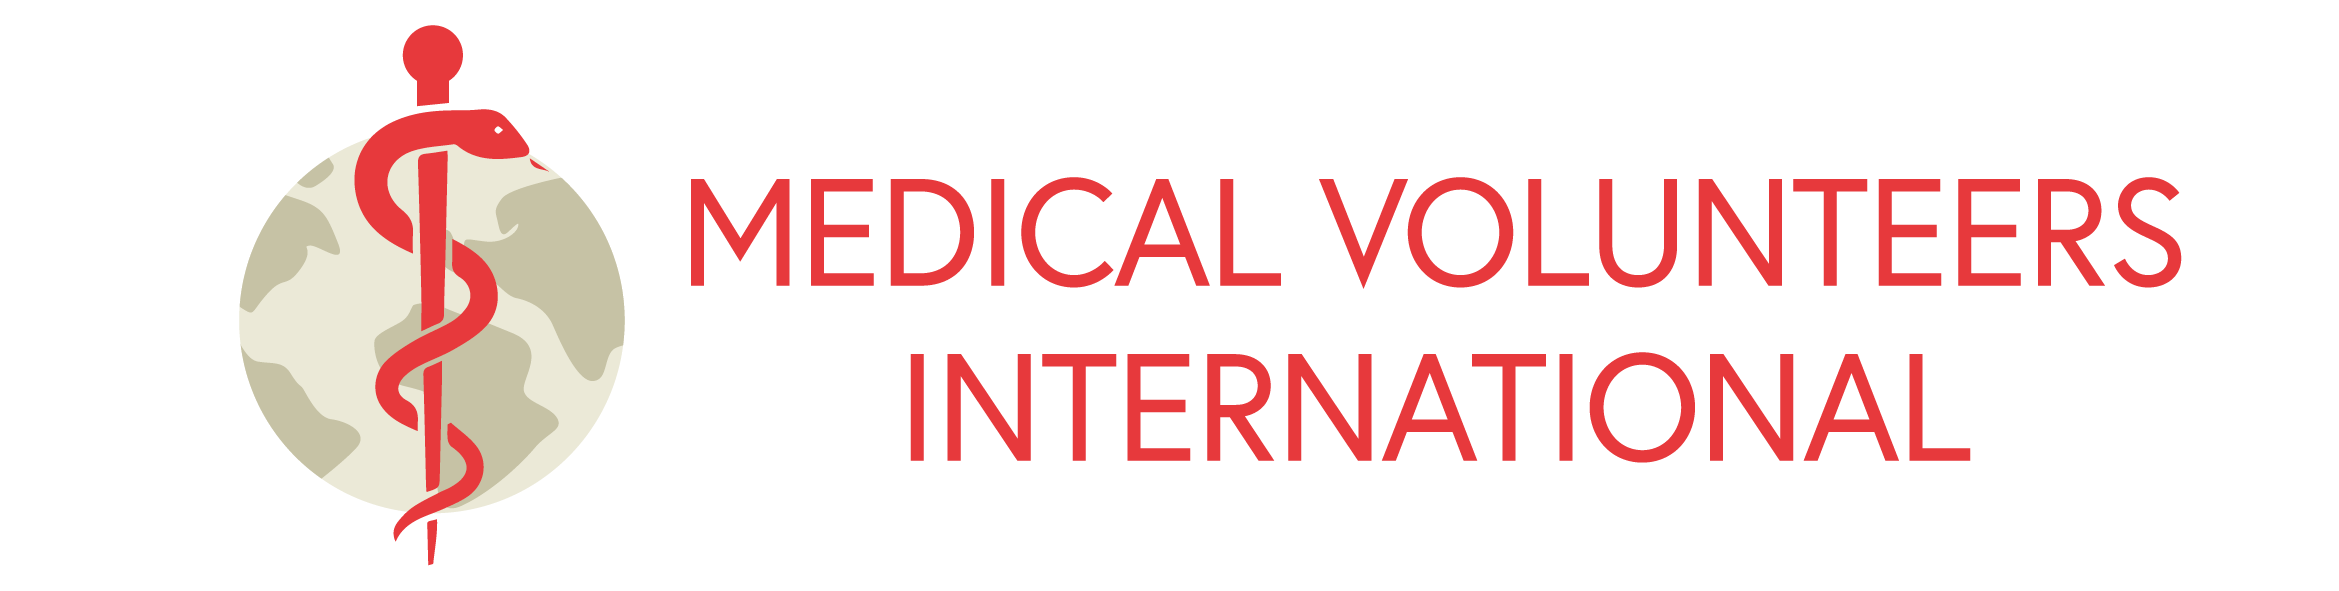 Medical Volunteers International